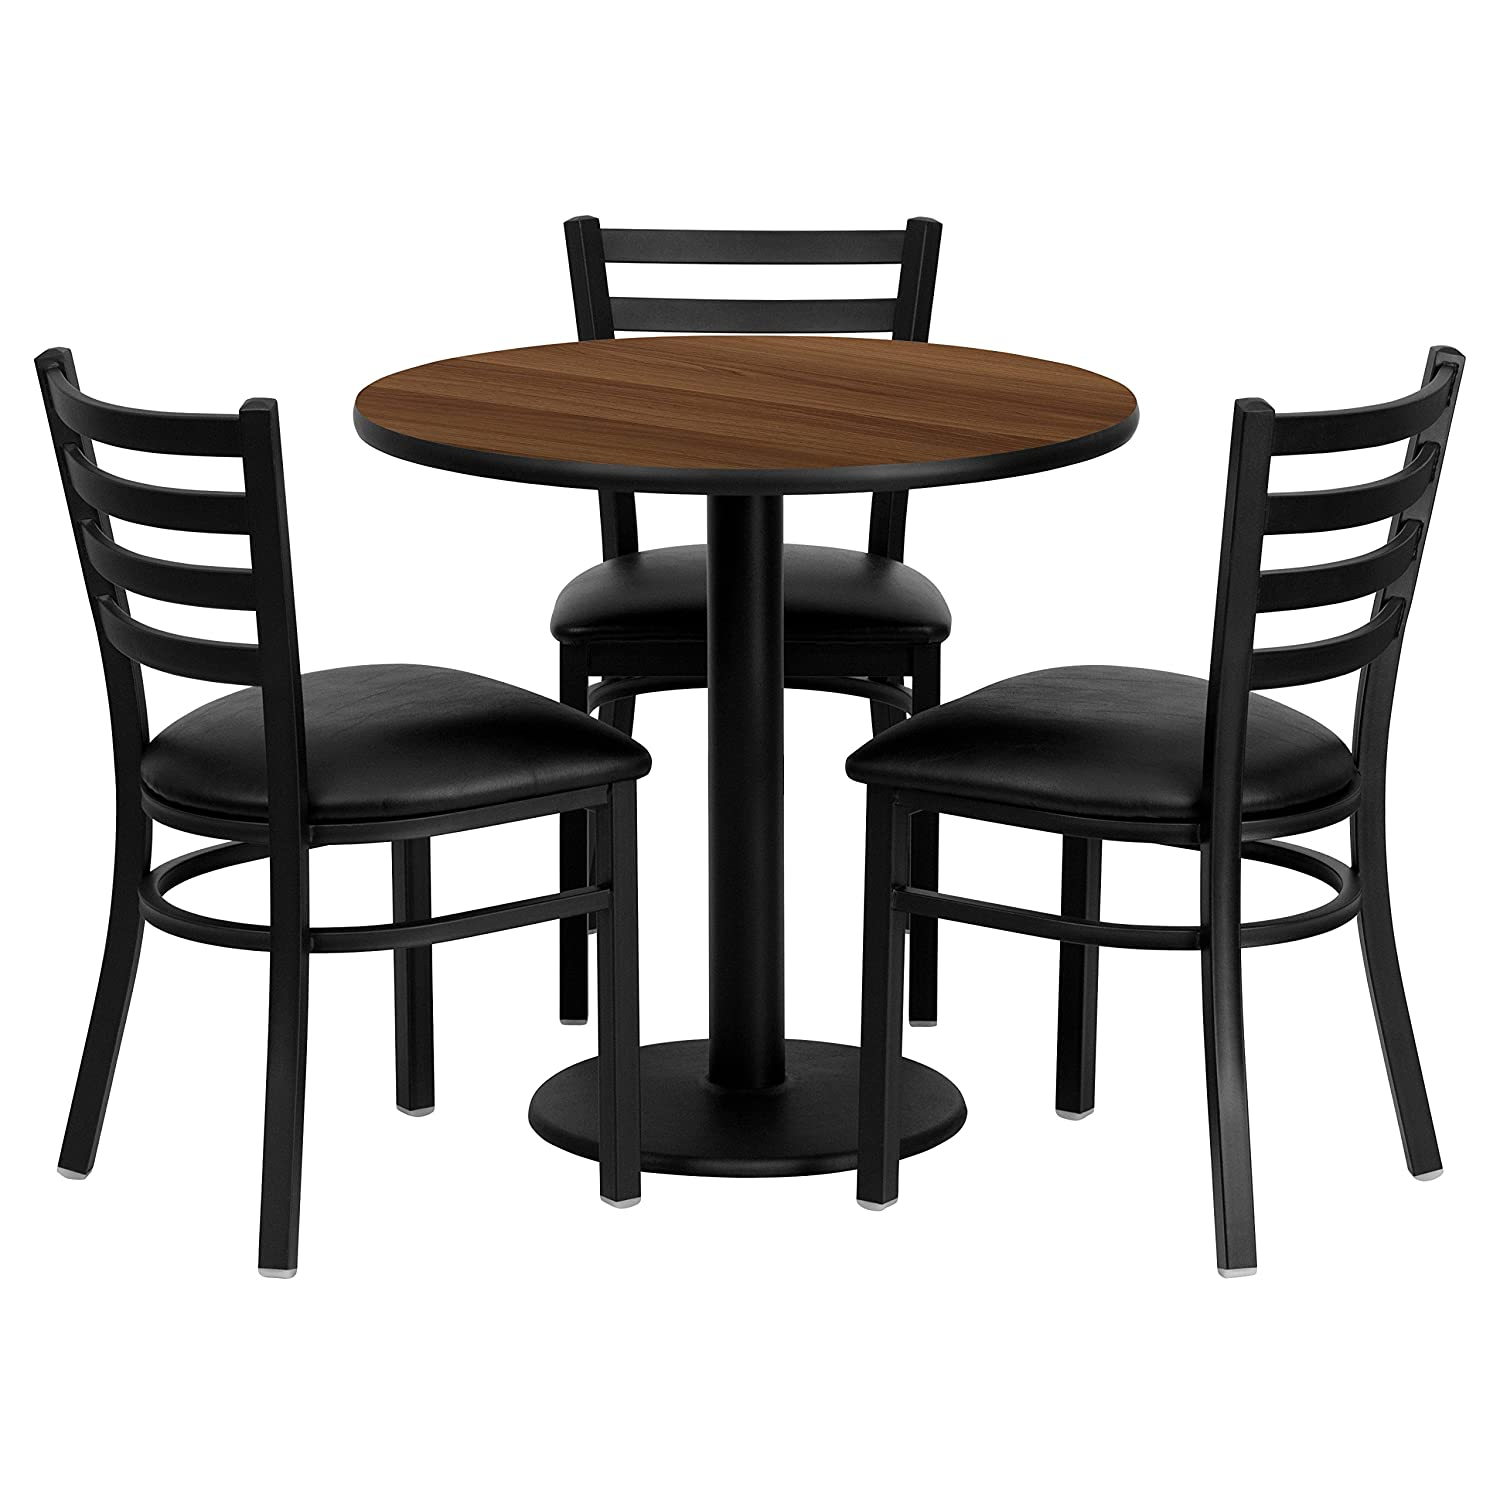 Flash Furniture 30'' Round Walnut Laminate Table Set with 3 Ladder Back Metal Chairs - Black Vinyl Seat